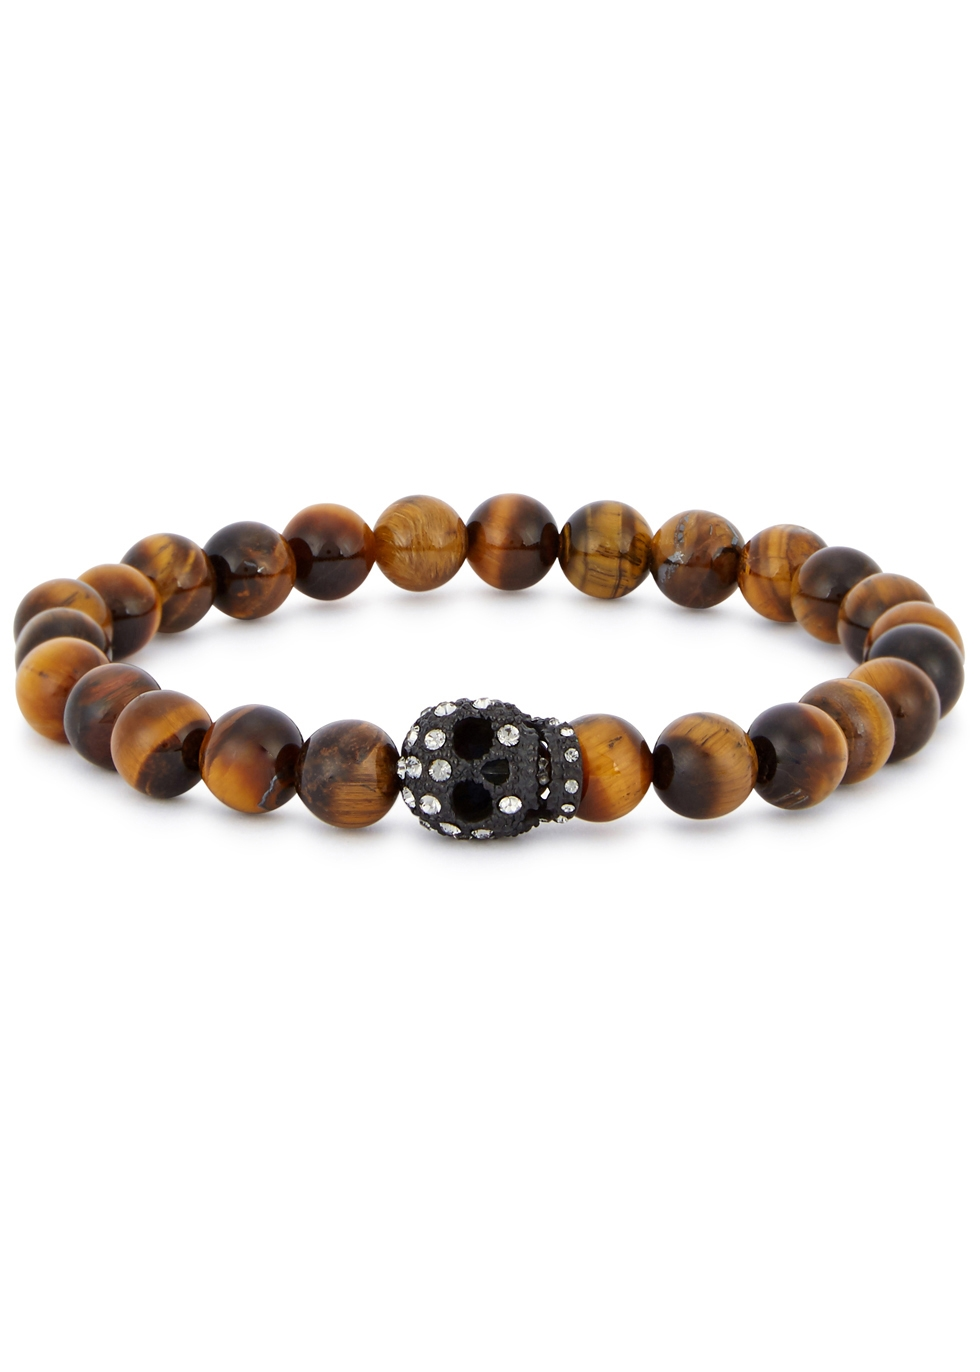 SIMON CARTER TIGER'S EYE BEADED SKULL BRACELET